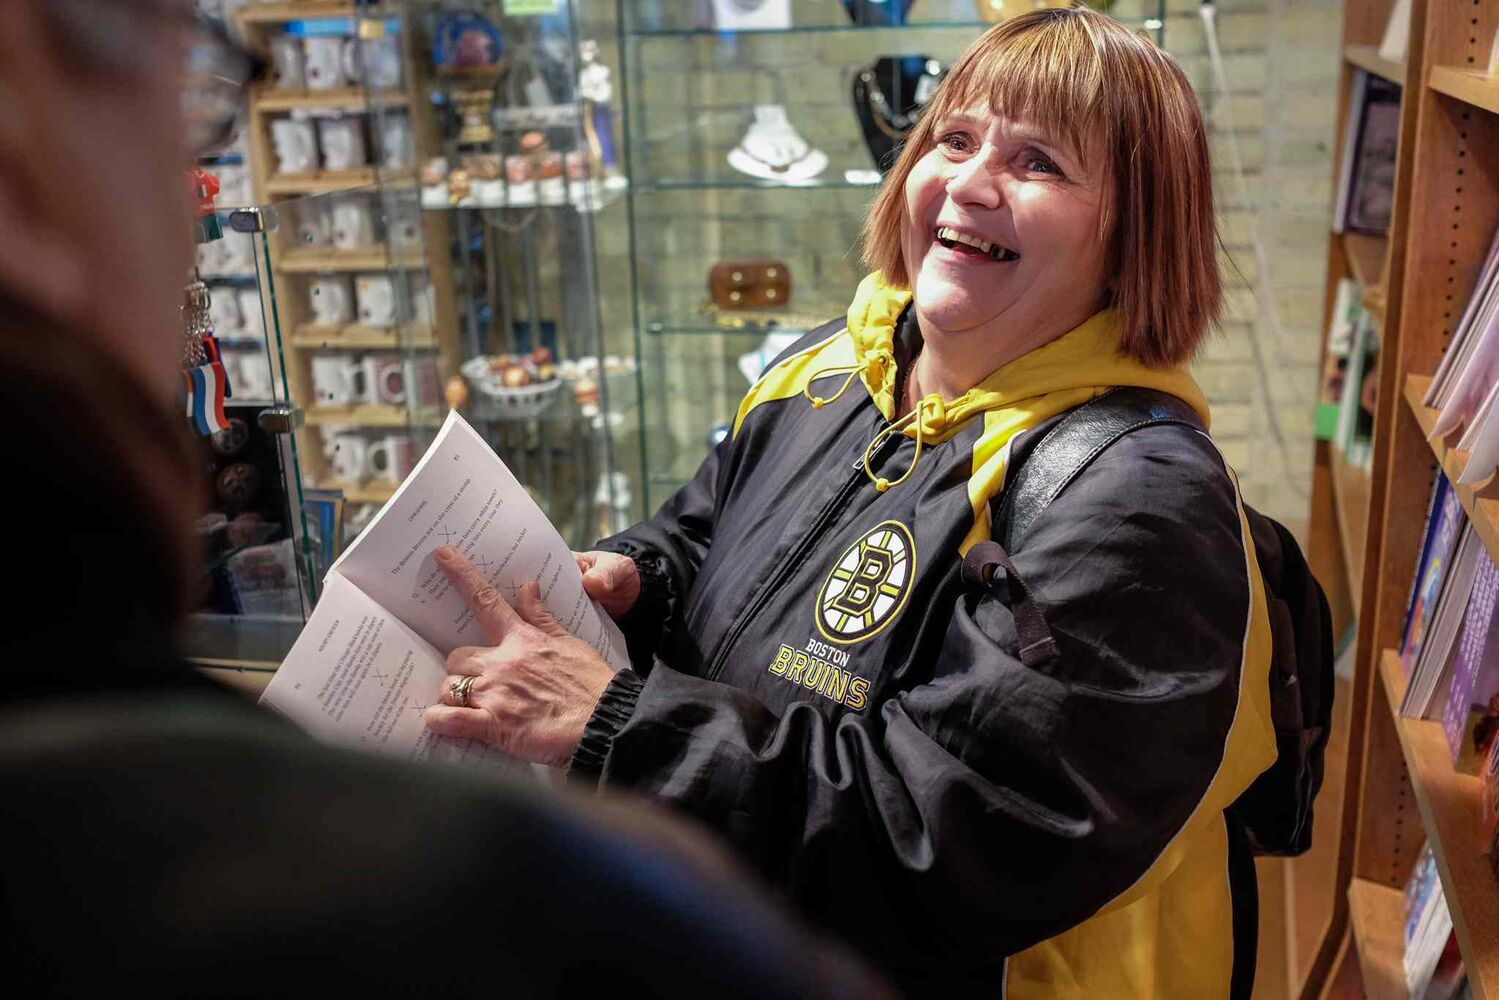 Cathy finds a hockey joke book while browsing the stores at The Forks. MIKE DEAL / WINNIPEG FREE PRESS